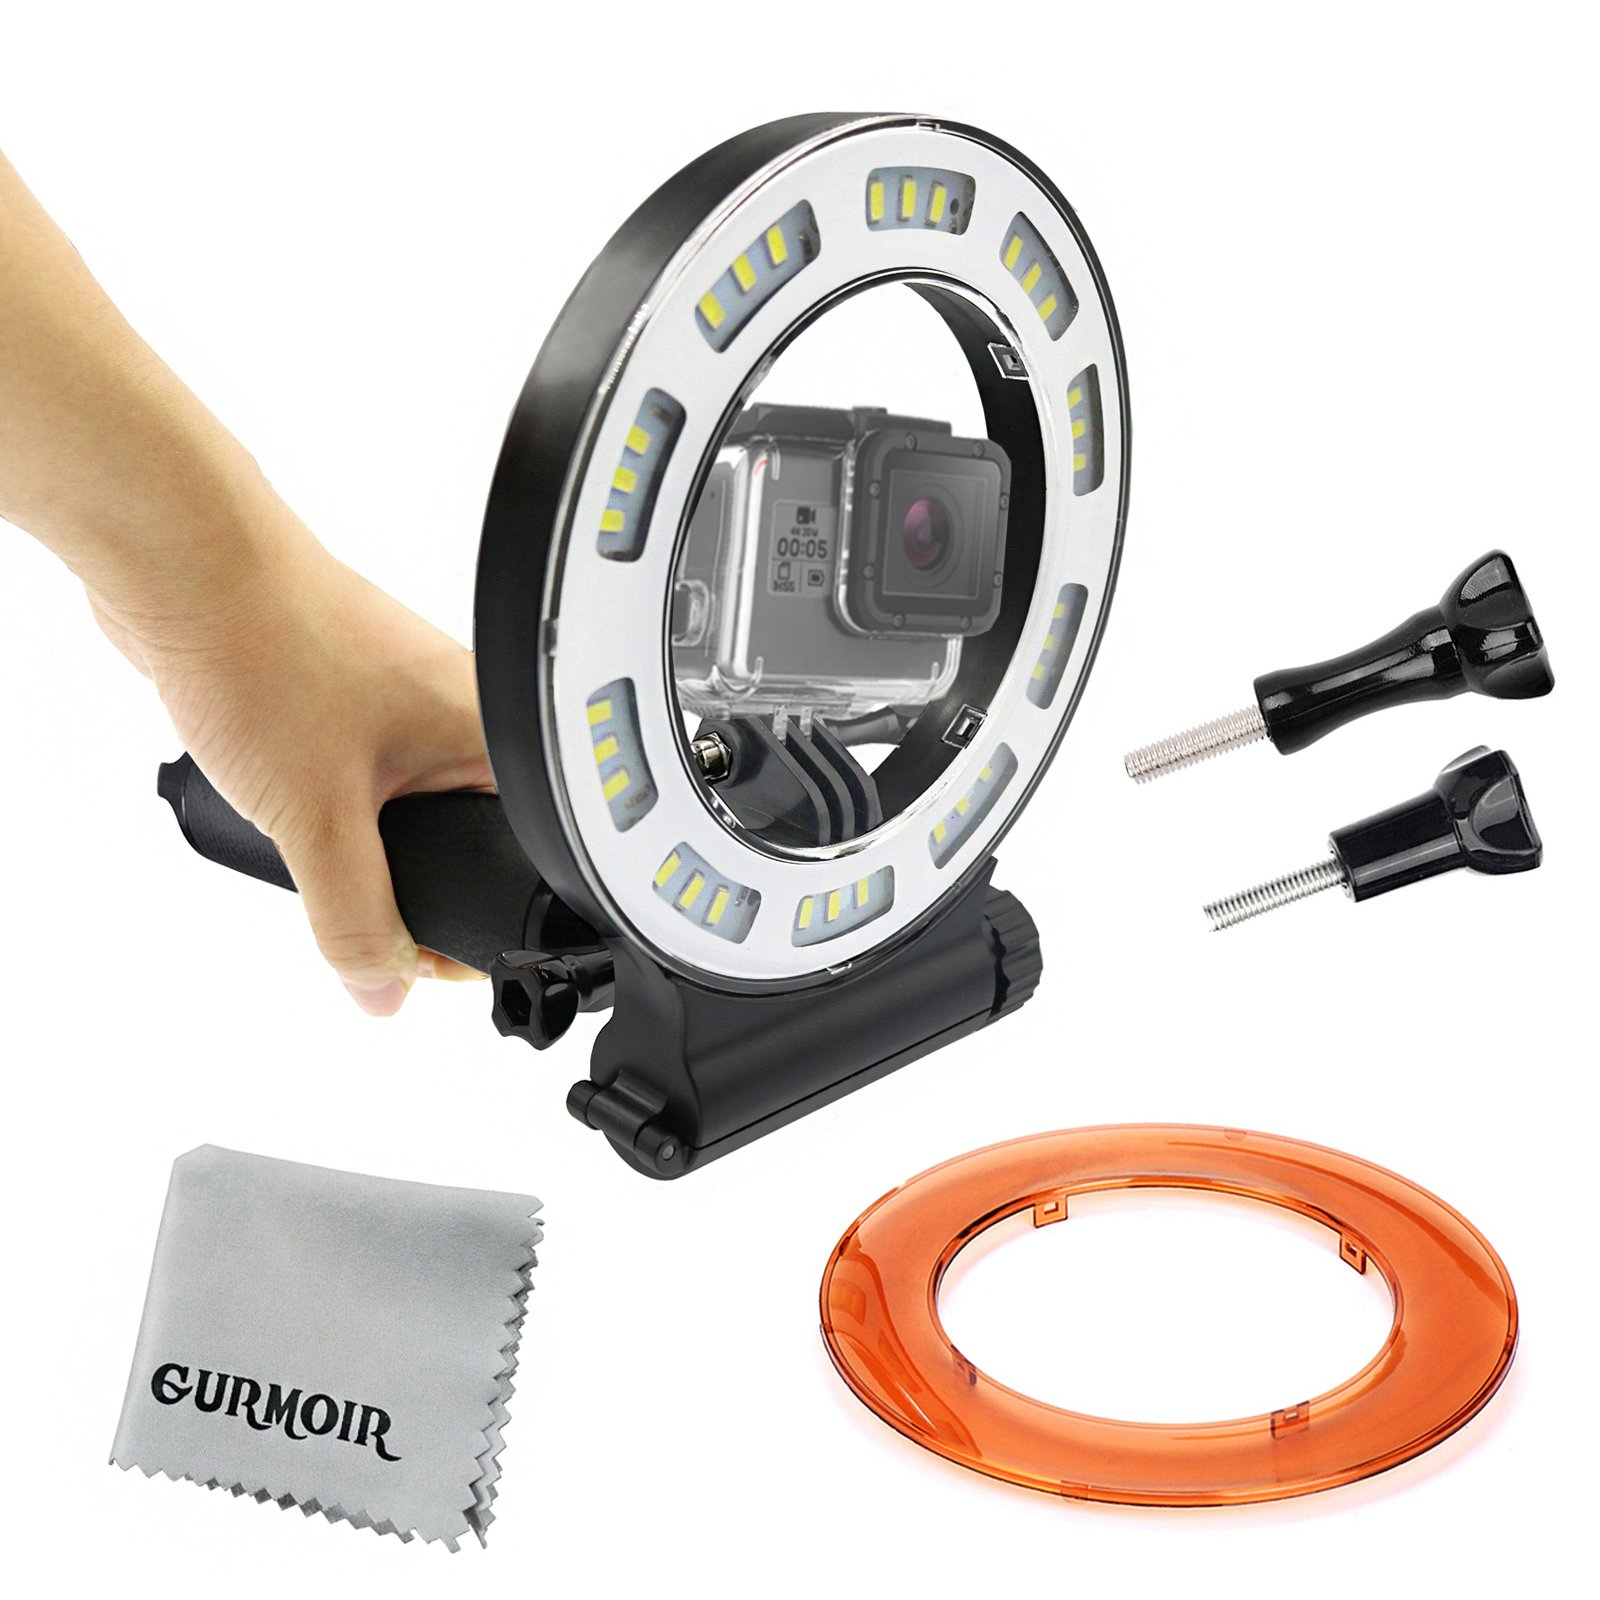 Gurmoir Waterproof Diving Light 40m Dive Underwater 1000 Lumen LED Flash Ring Light for GoPro Hero 6/5/HERO(2018)/5S/4/4S/3+ SJCAM YI and More Action Camera Scuba Diving(With Battery)